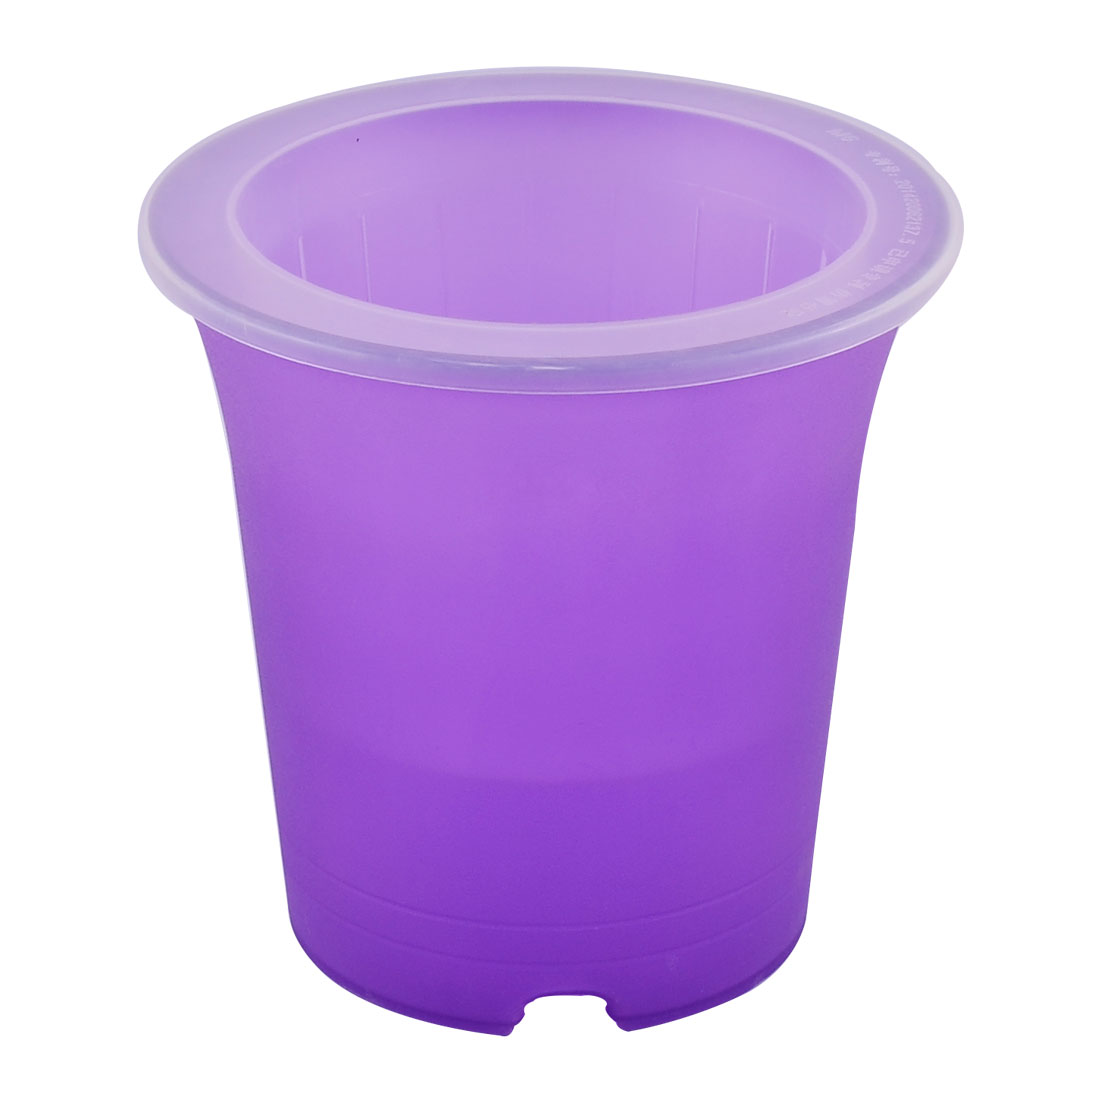 Plastic Double Layers Automatic Self Watering Planter Flowerpot Container Purple